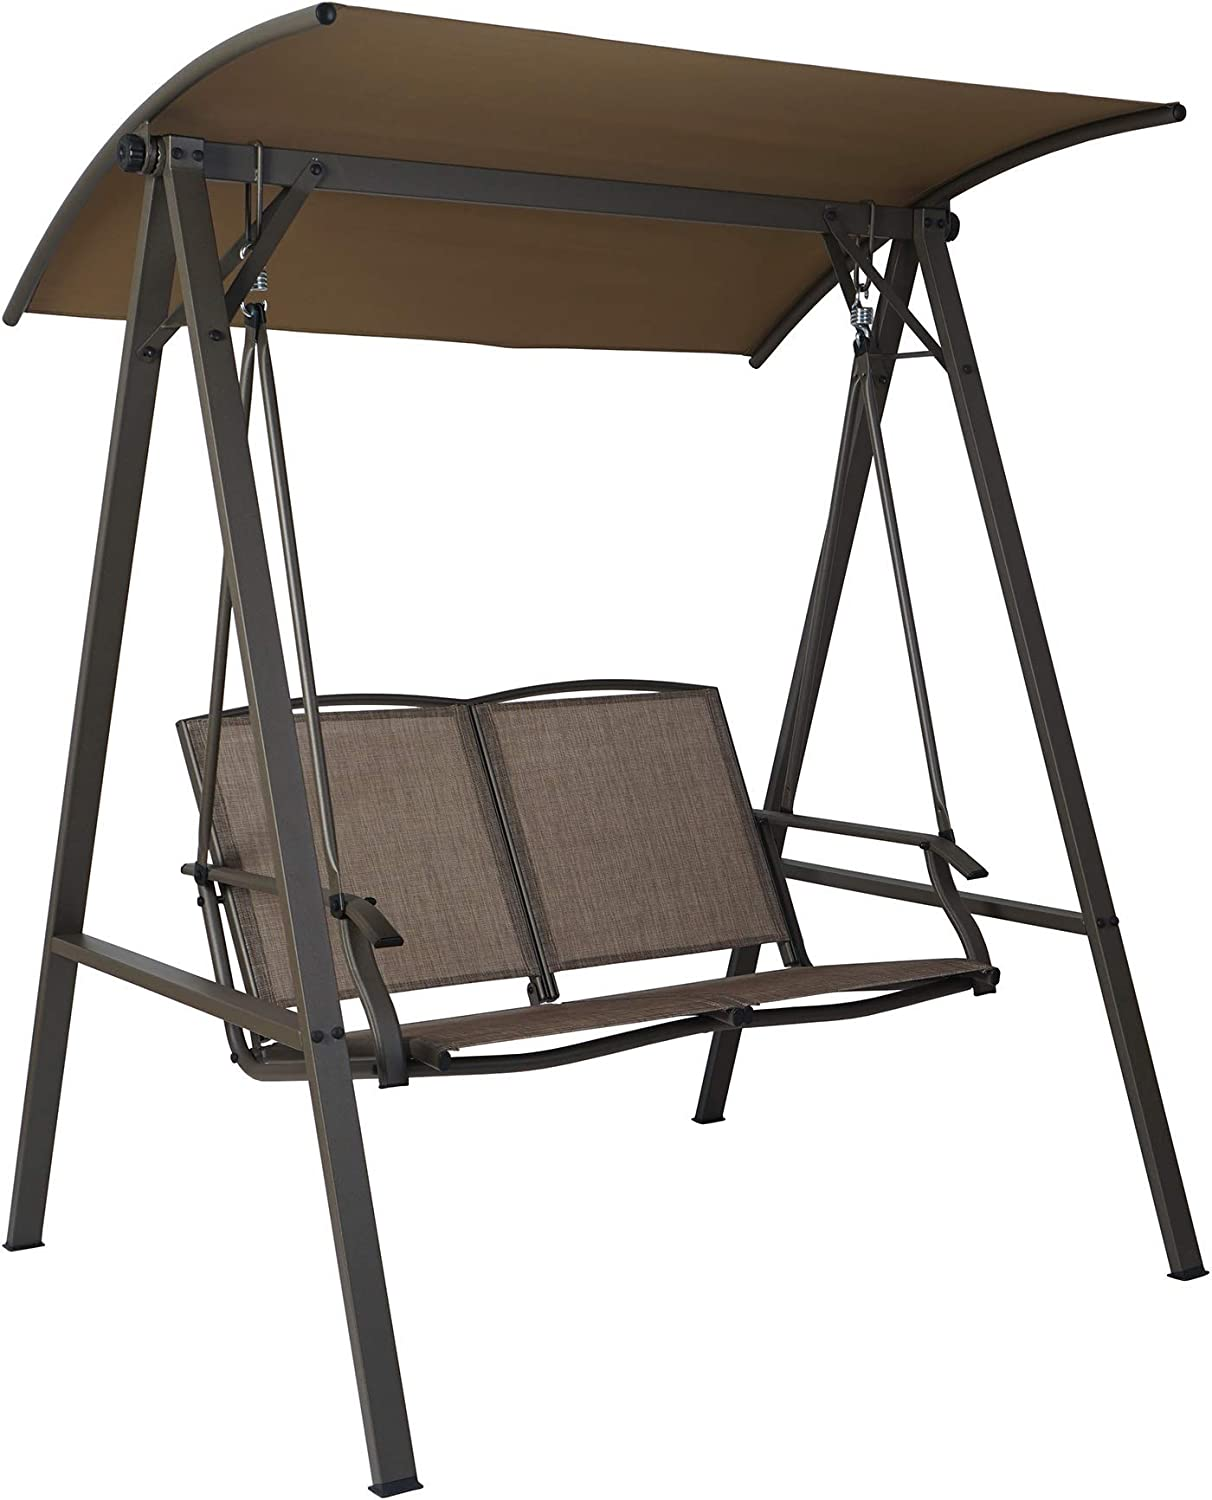 Kozyard Doris 2 Person Outdoor Patio Swing with Breathable Textilence Seat (Taupe)